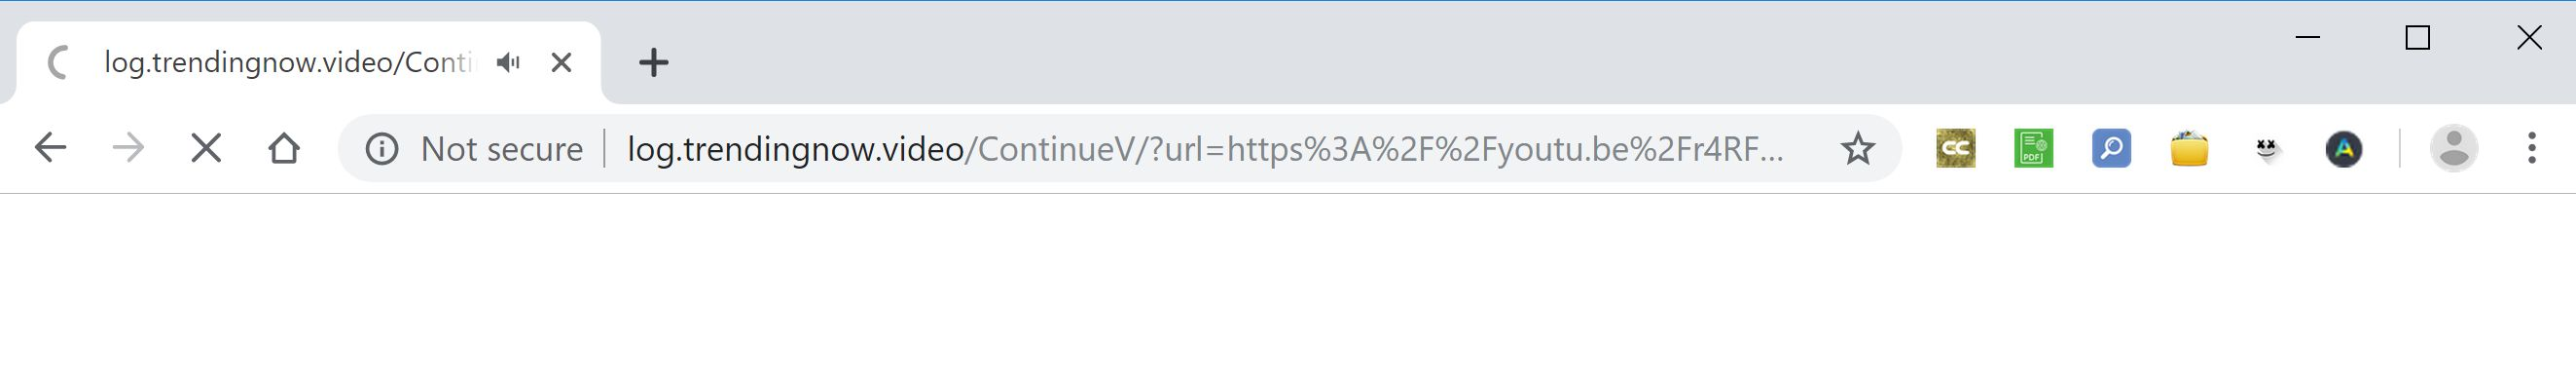 Image: Chrome browser is redirected to Log.trendingnow.video